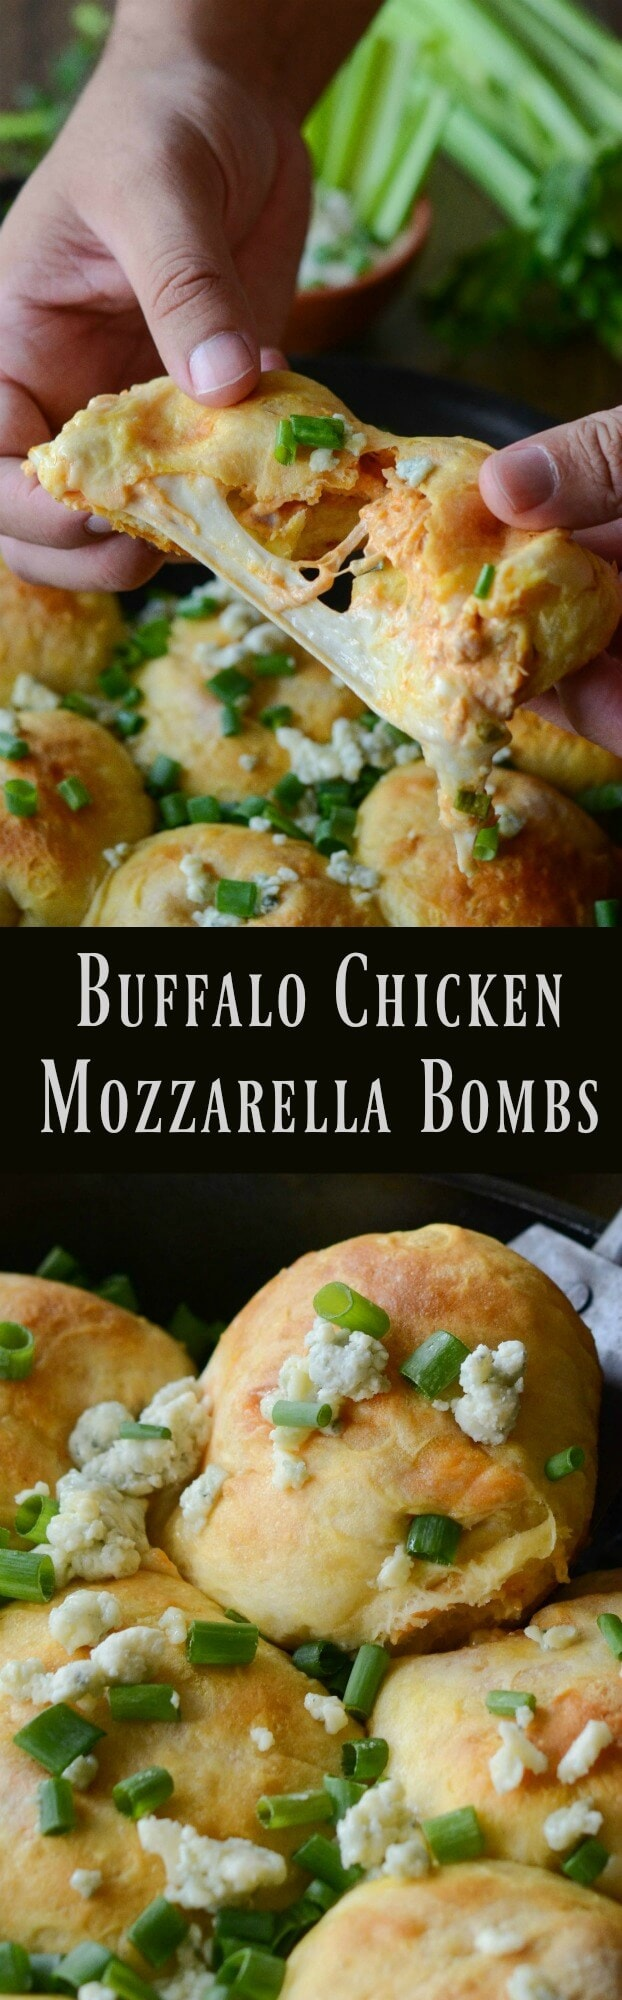 Buffalo Chicken Mozzarella Bombs: biscuit dough is stuffed with buffalo chicken, blue cheese and fresh mozzarella!